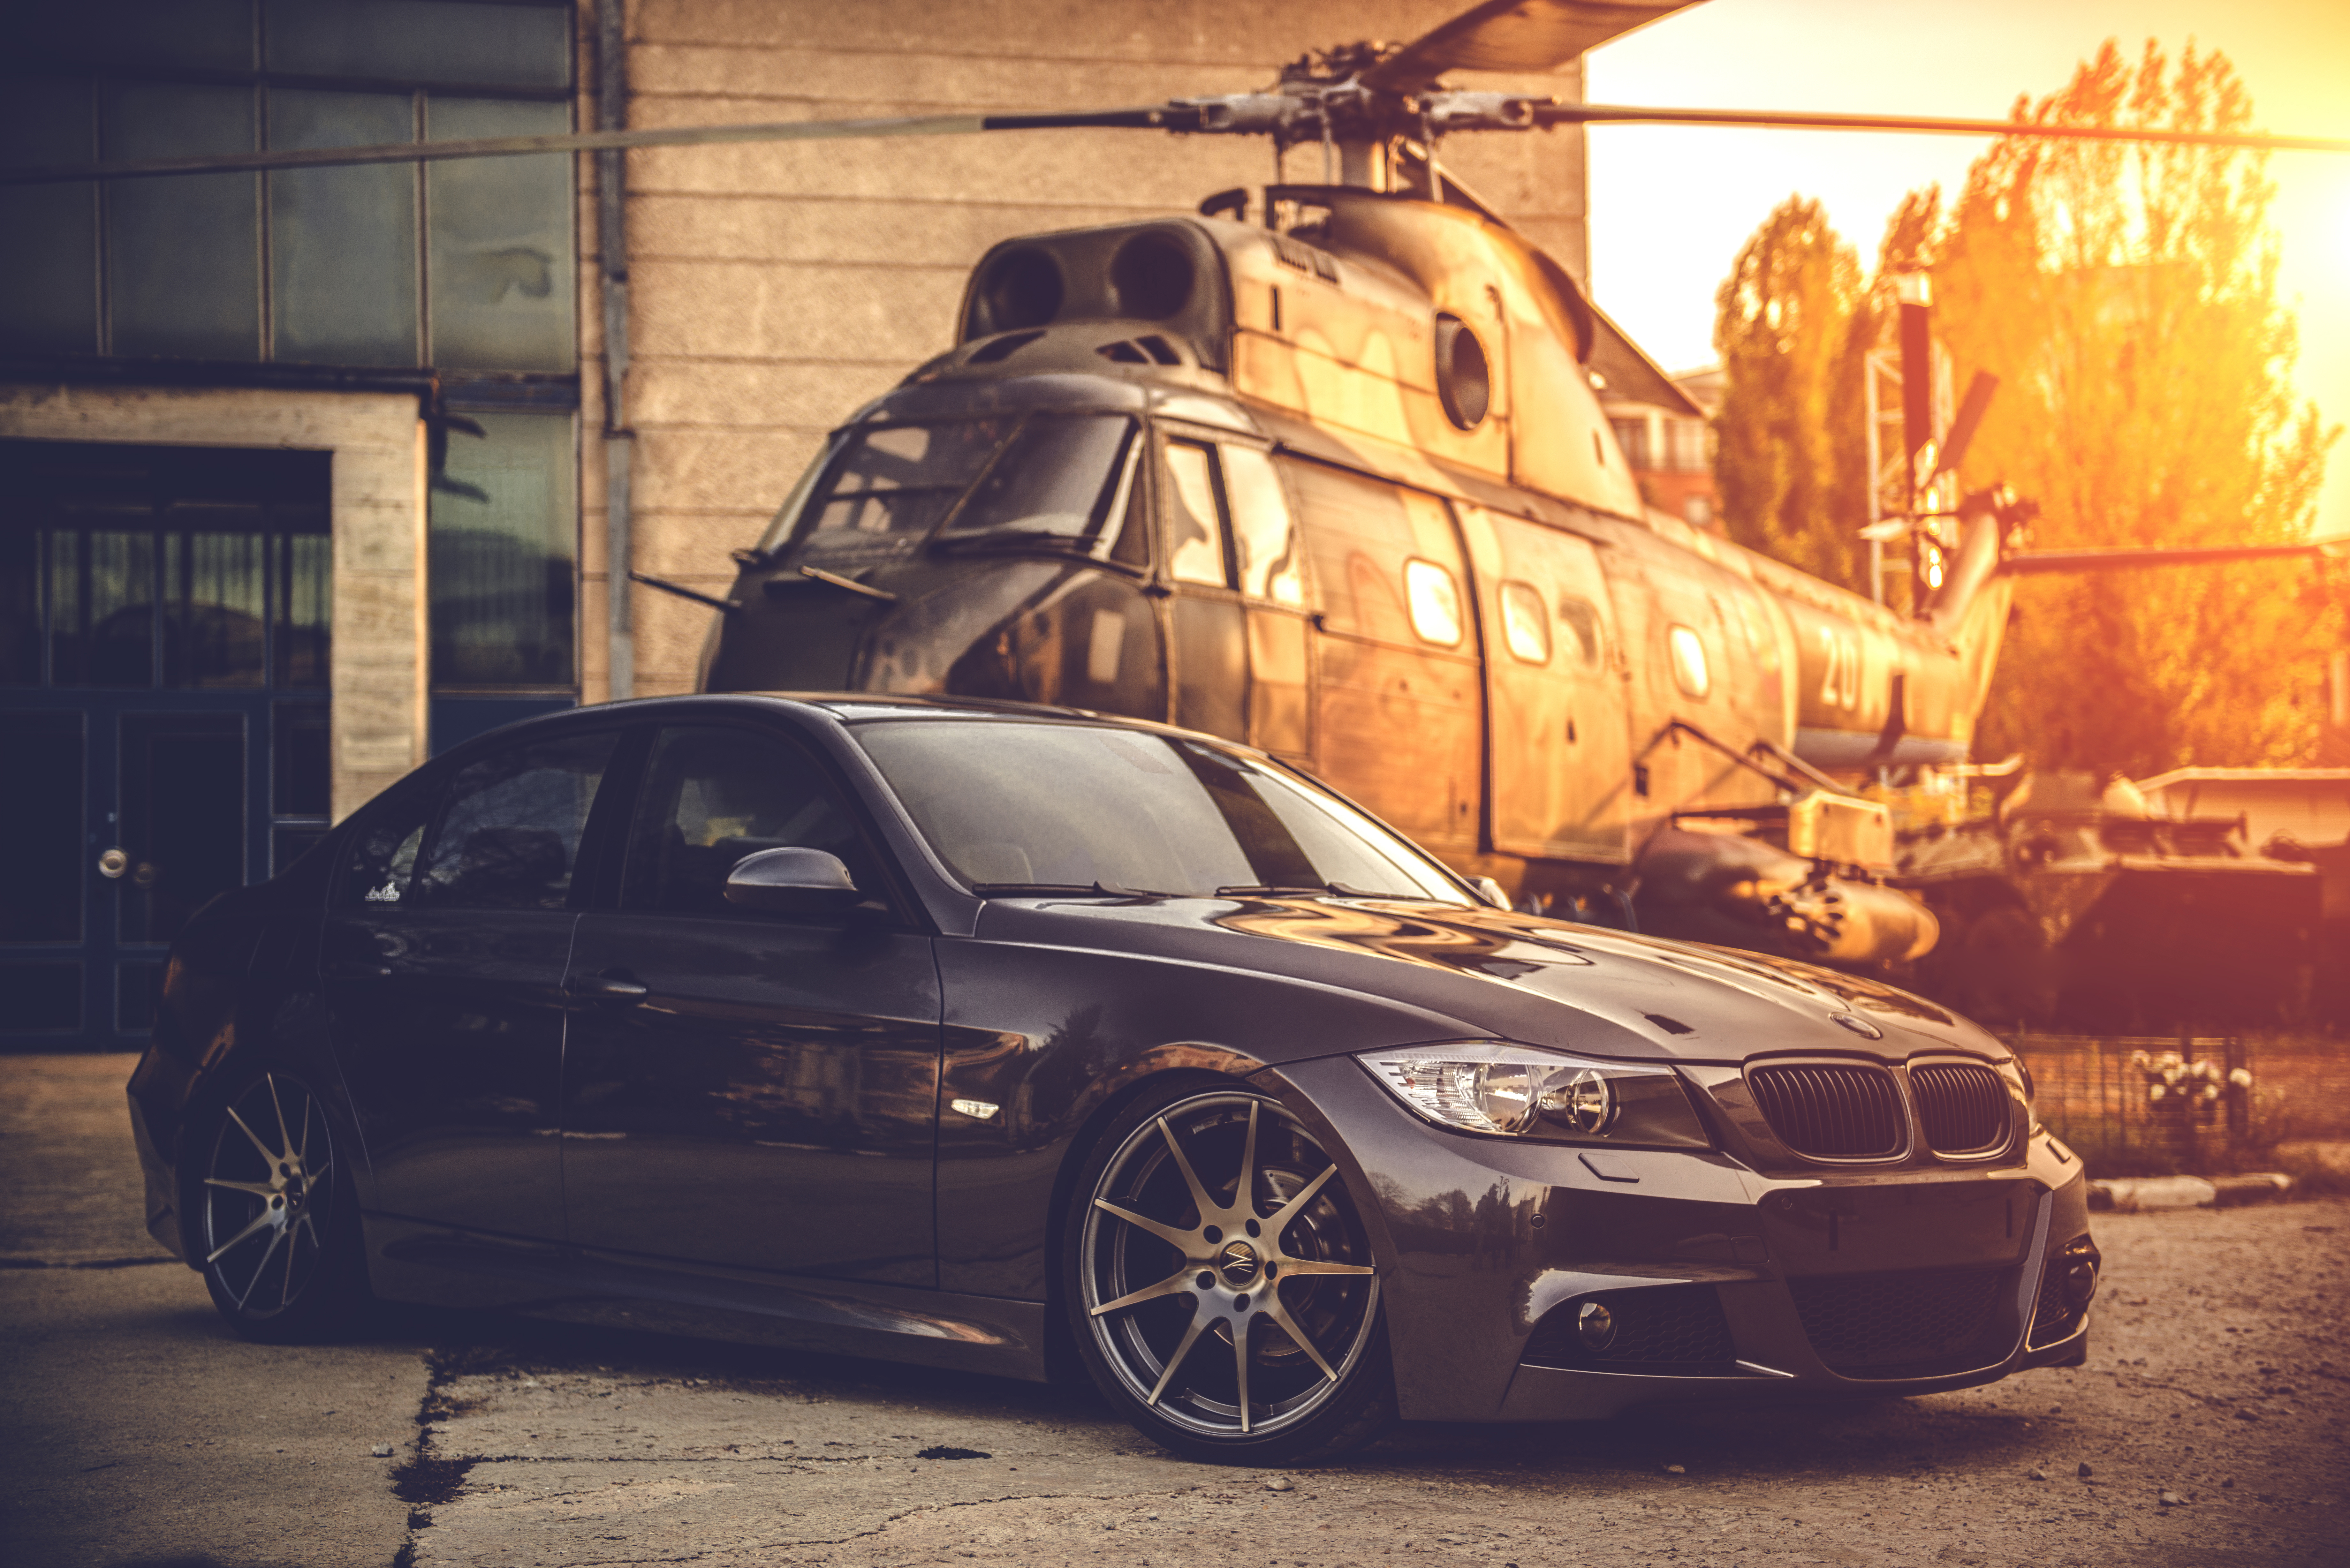 bmw_e90_deep_concave_black_helicopter_94623_7360x4912